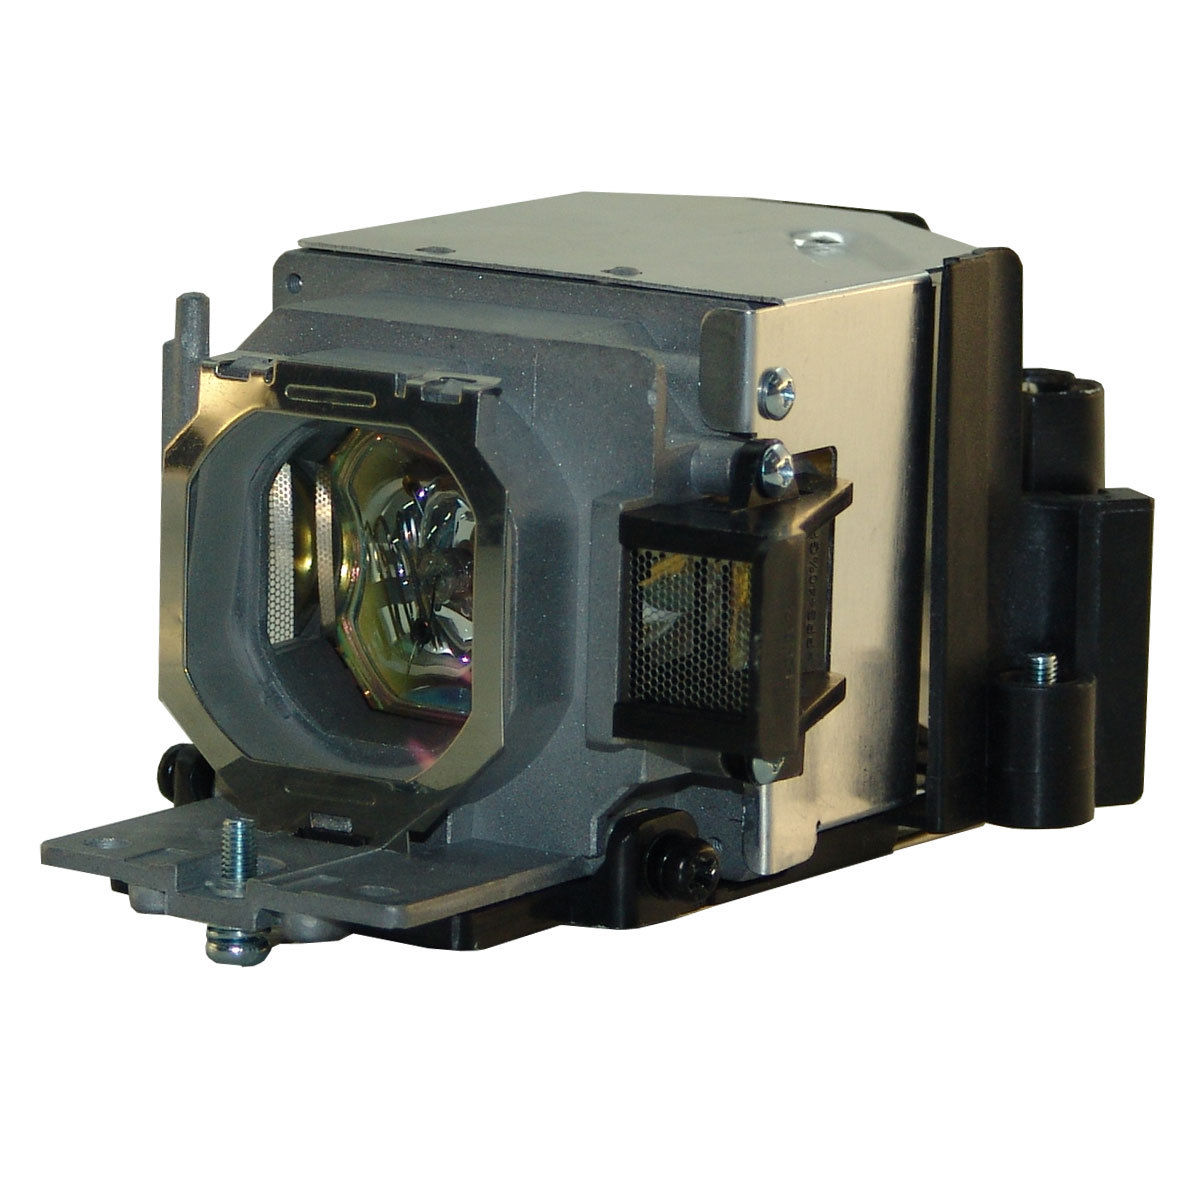 Projector Lamp Bulb LMP-D200 LMPD200 for SONY VPL-DX10 VPL-DX11 VPL-DX15 with housing